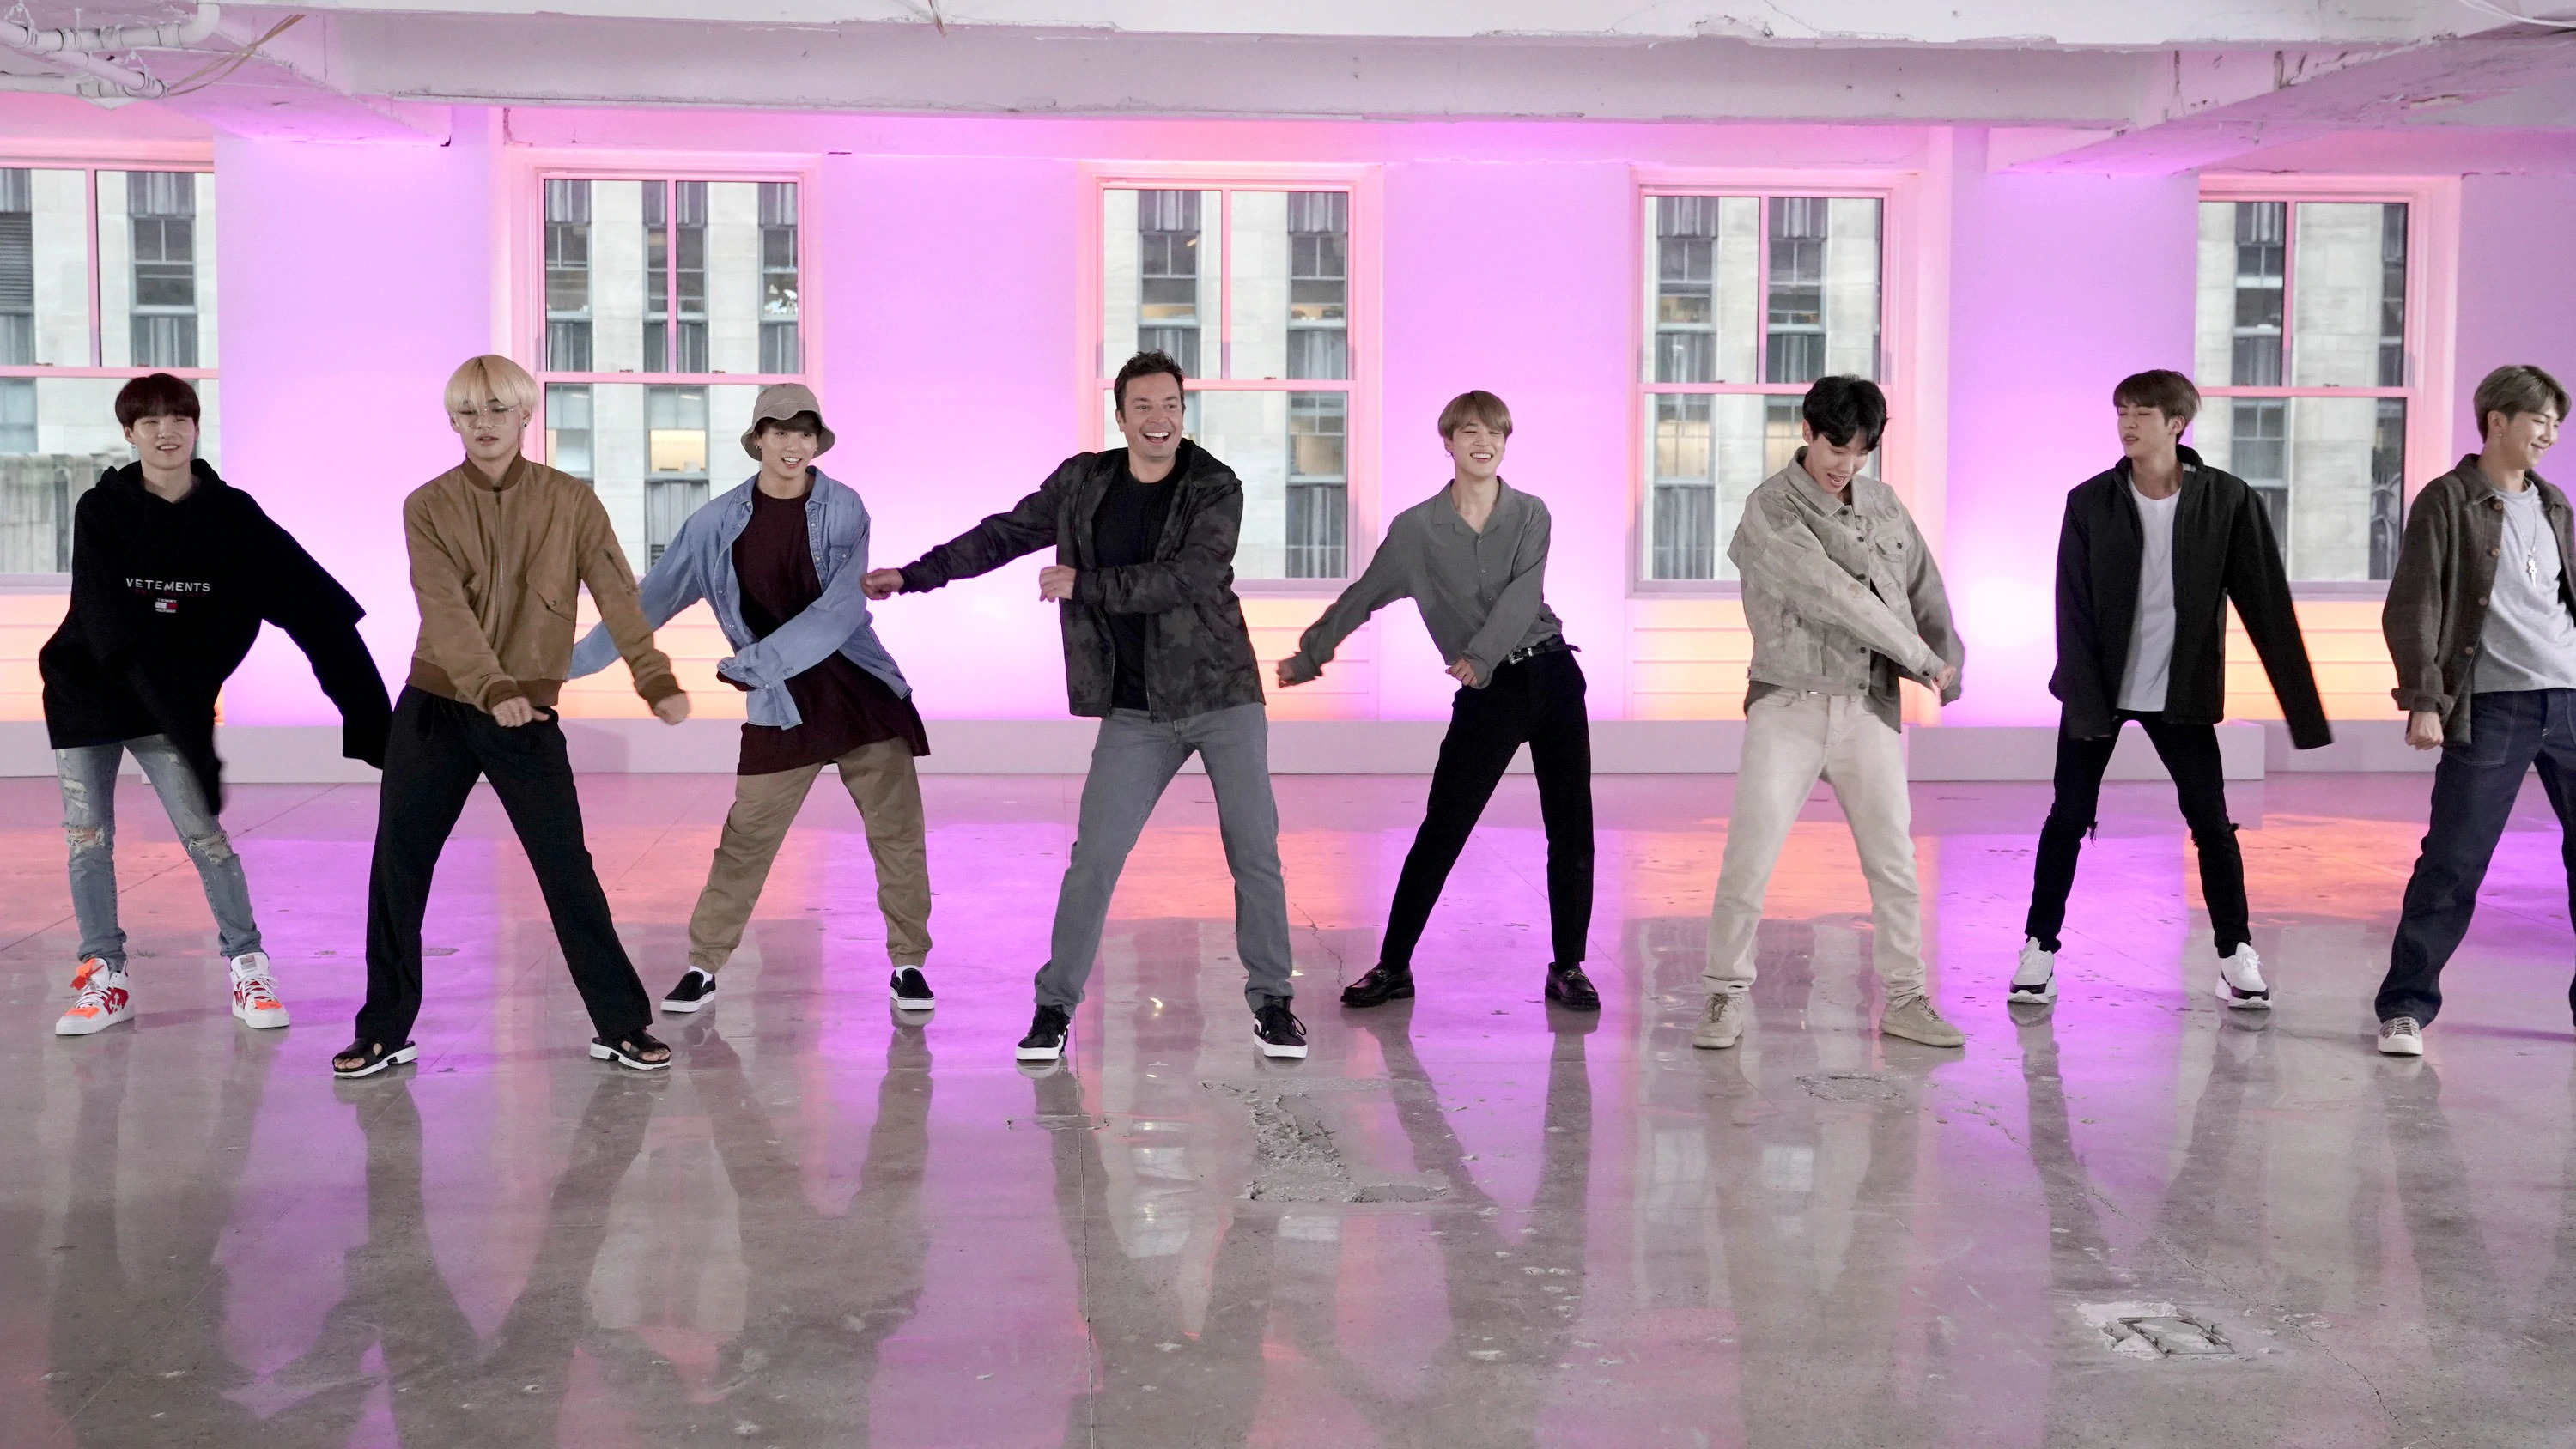 Fortnite dances as performed by BTS, the world's most